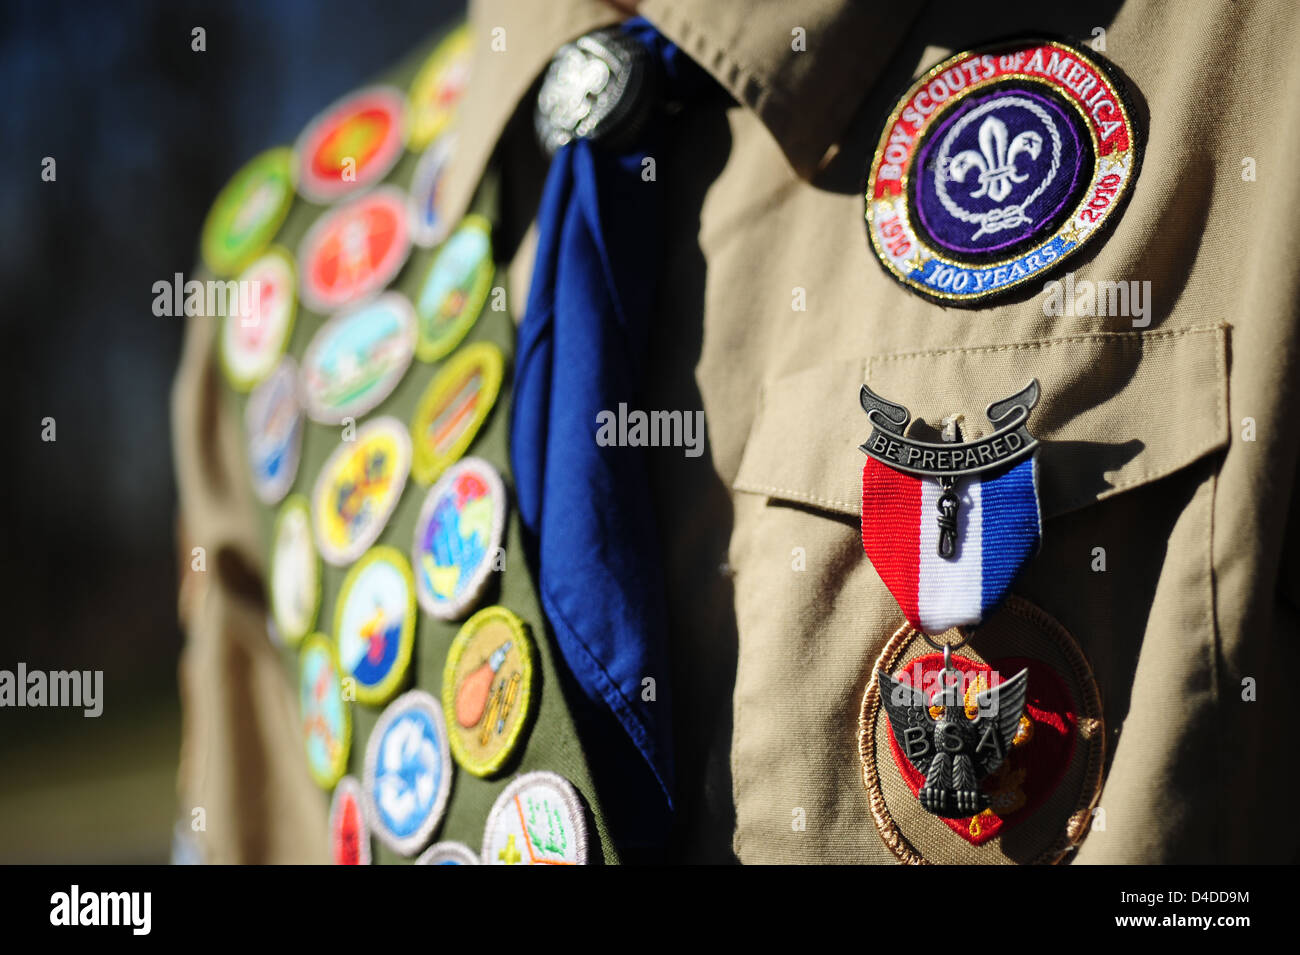 boy-scouts-of-america-close-up-of-an-eagle-scout-with-a-sash-full-D4DD9M.jpg